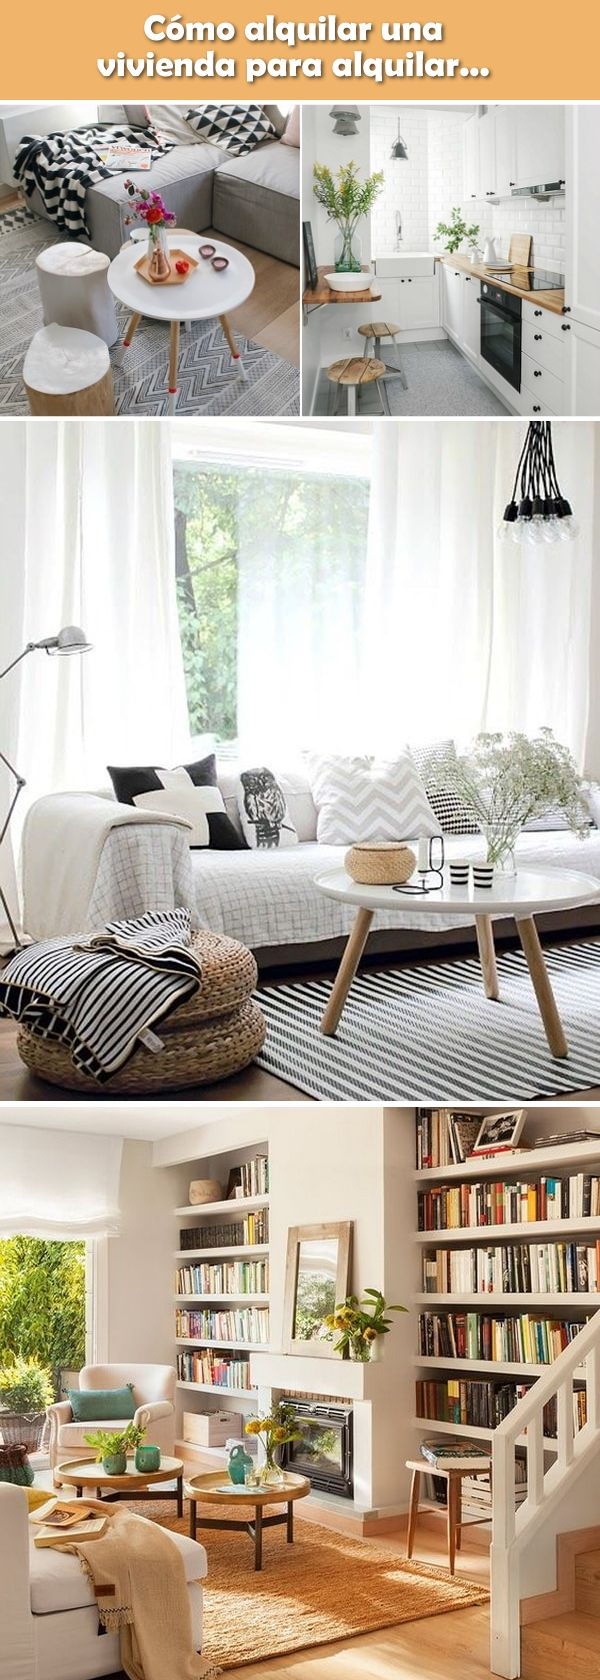 378 best Trucos Decoracin images on Pinterest